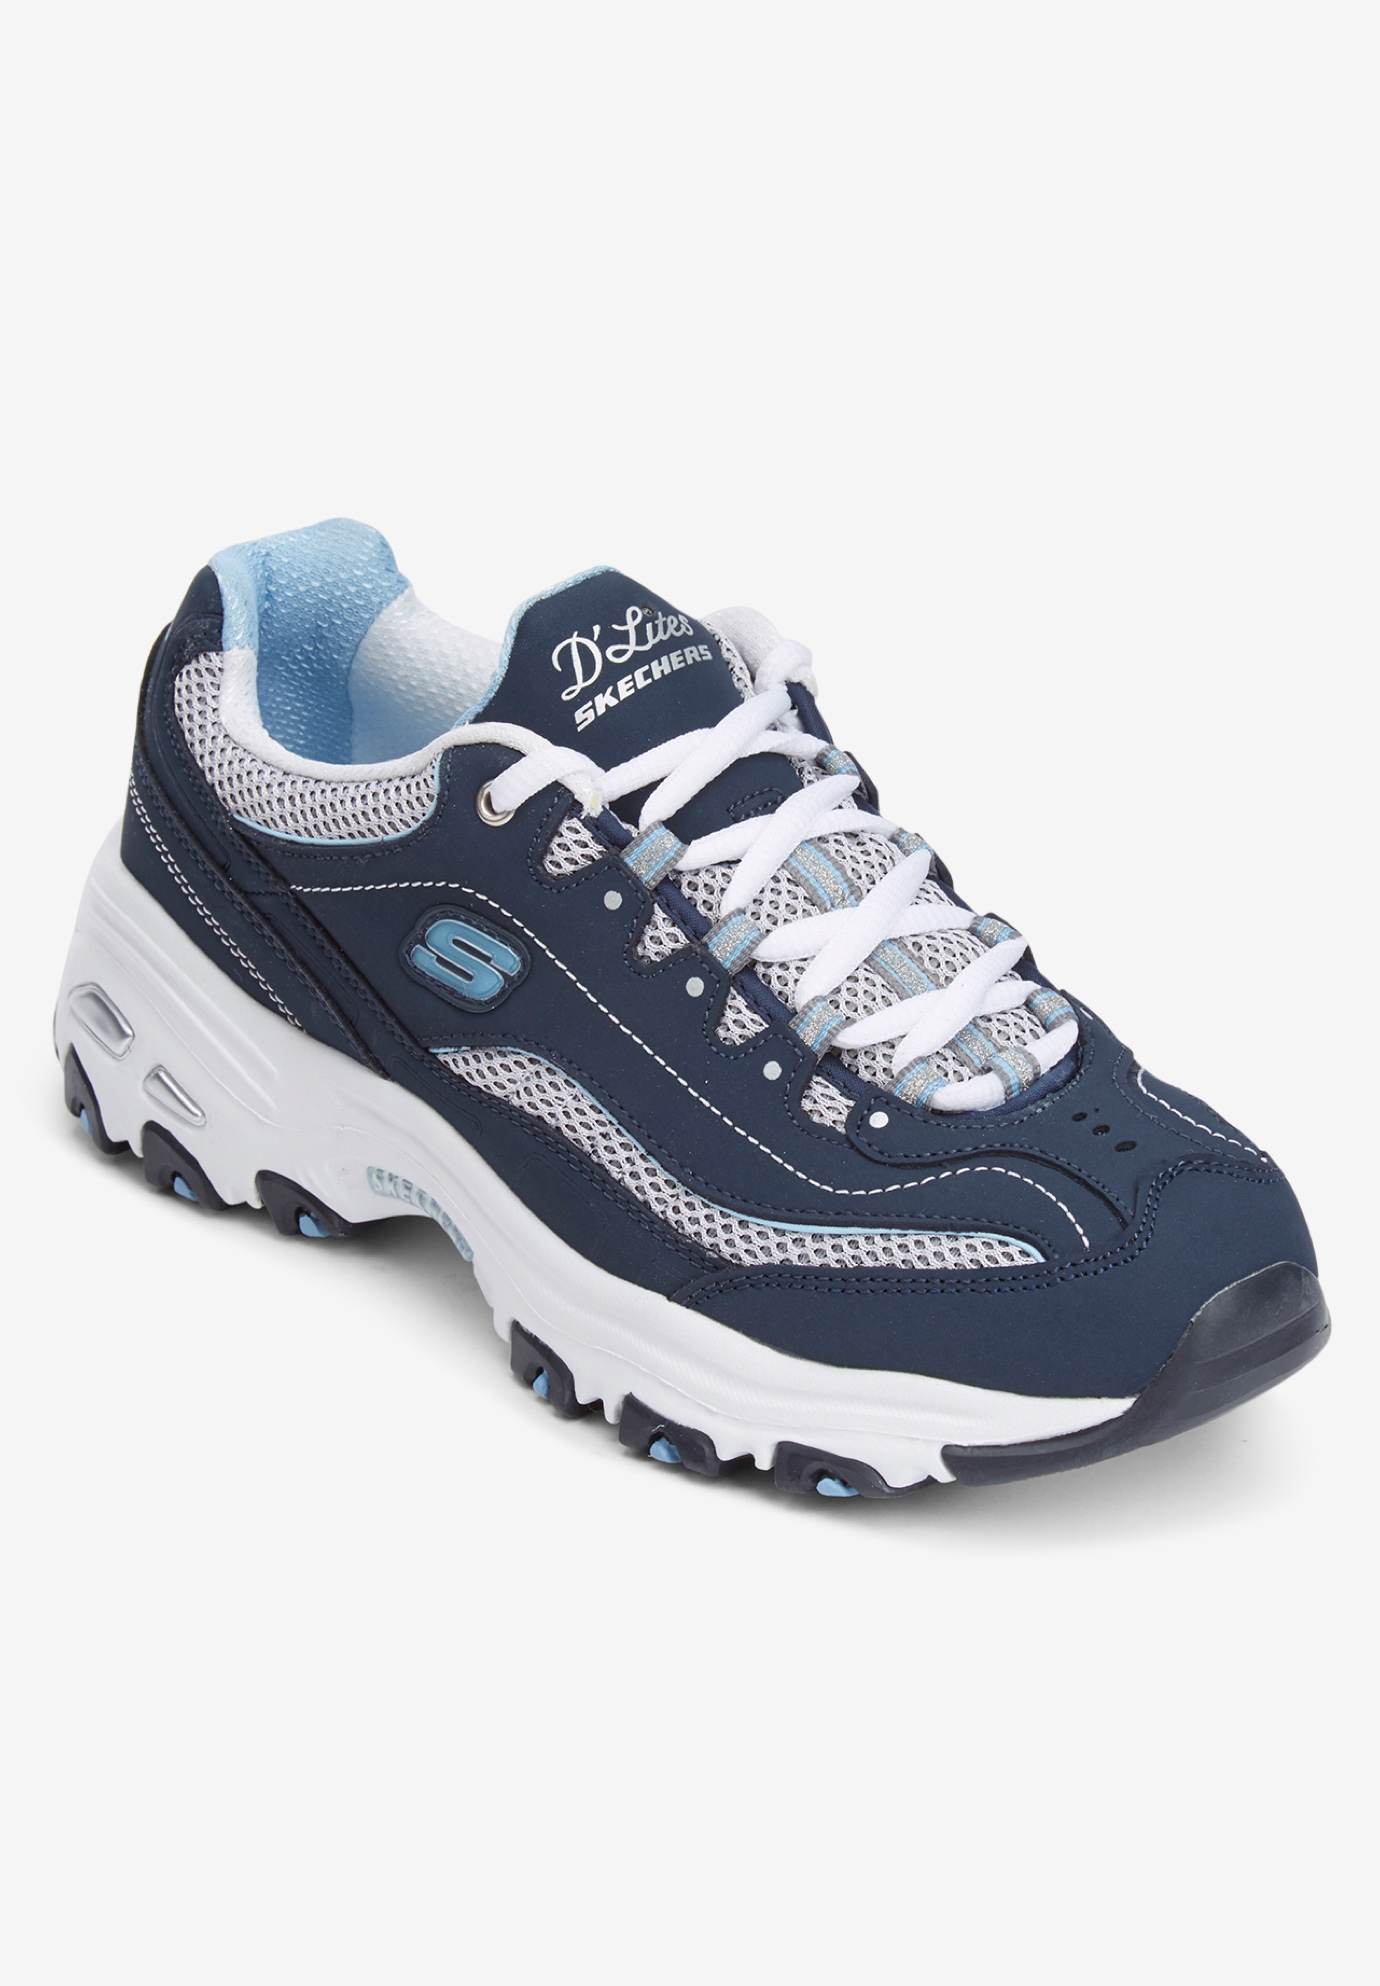 The D'Lites Life Saver Sneaker by Skechers®,